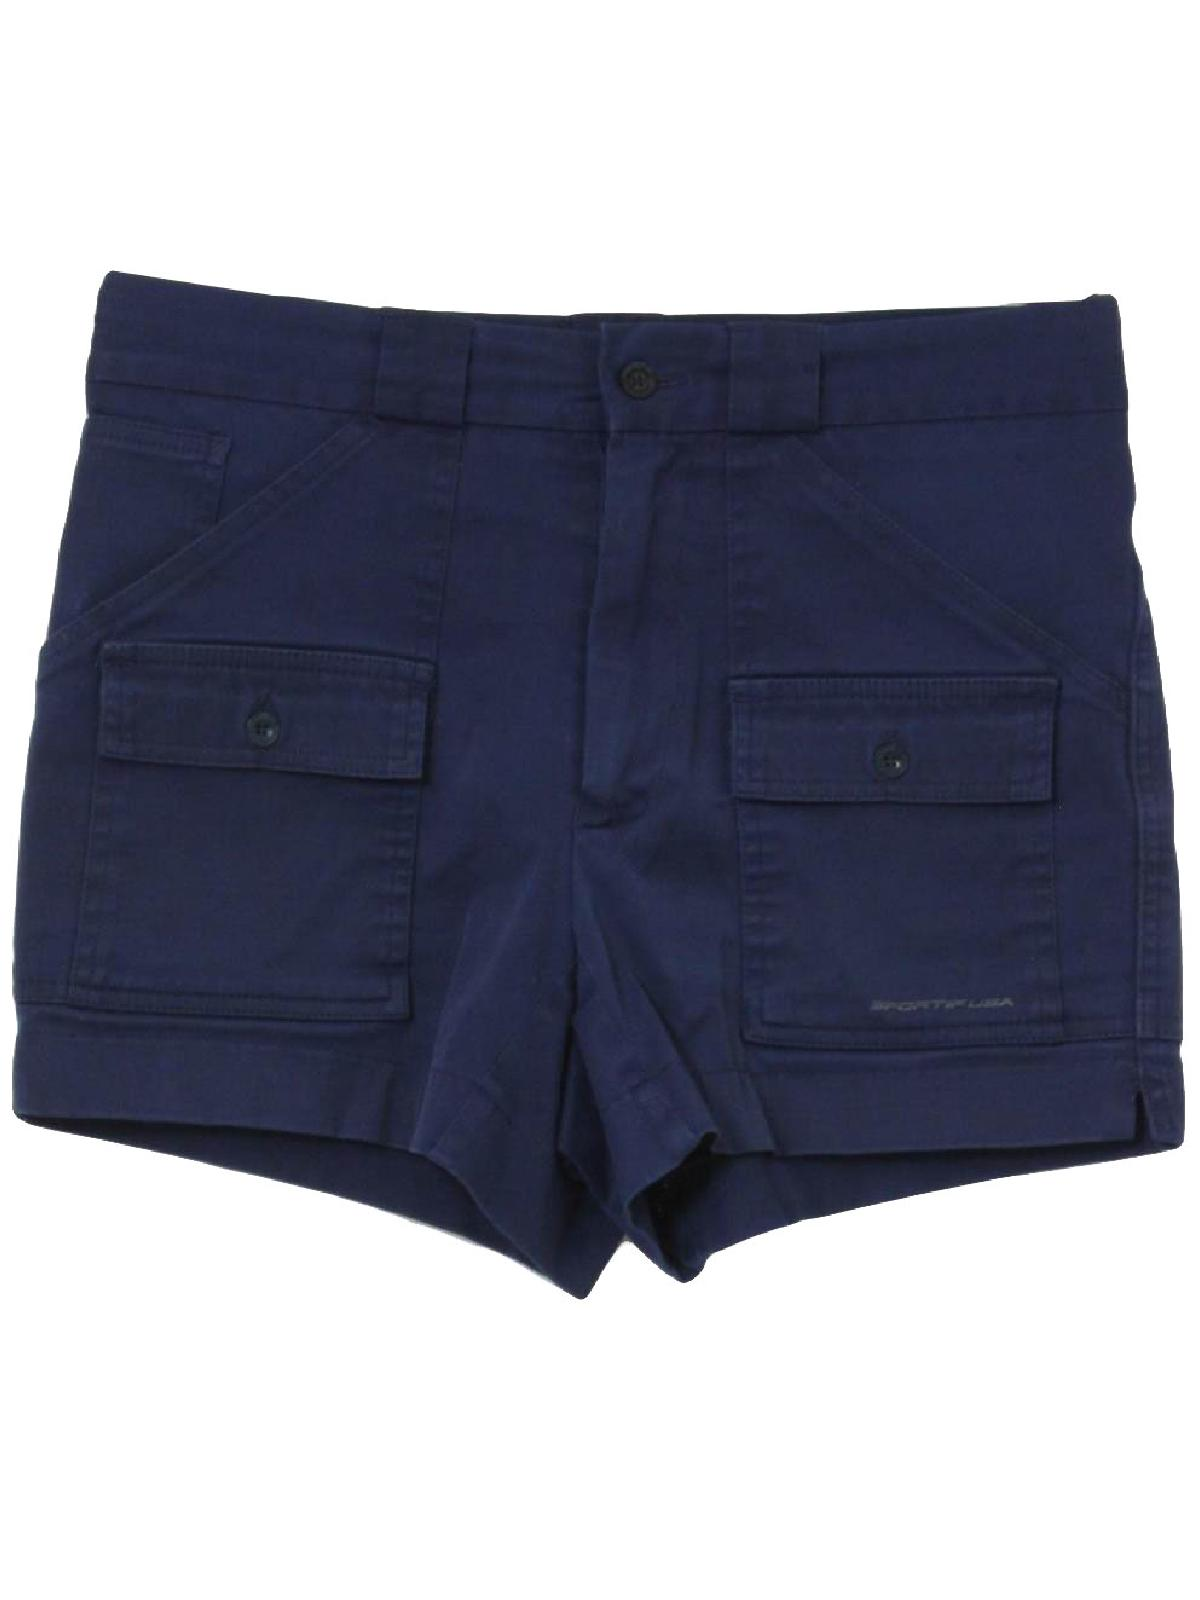 Retro 90's Shorts: 90s (80s look) -Sportif- Mens navy blue ...